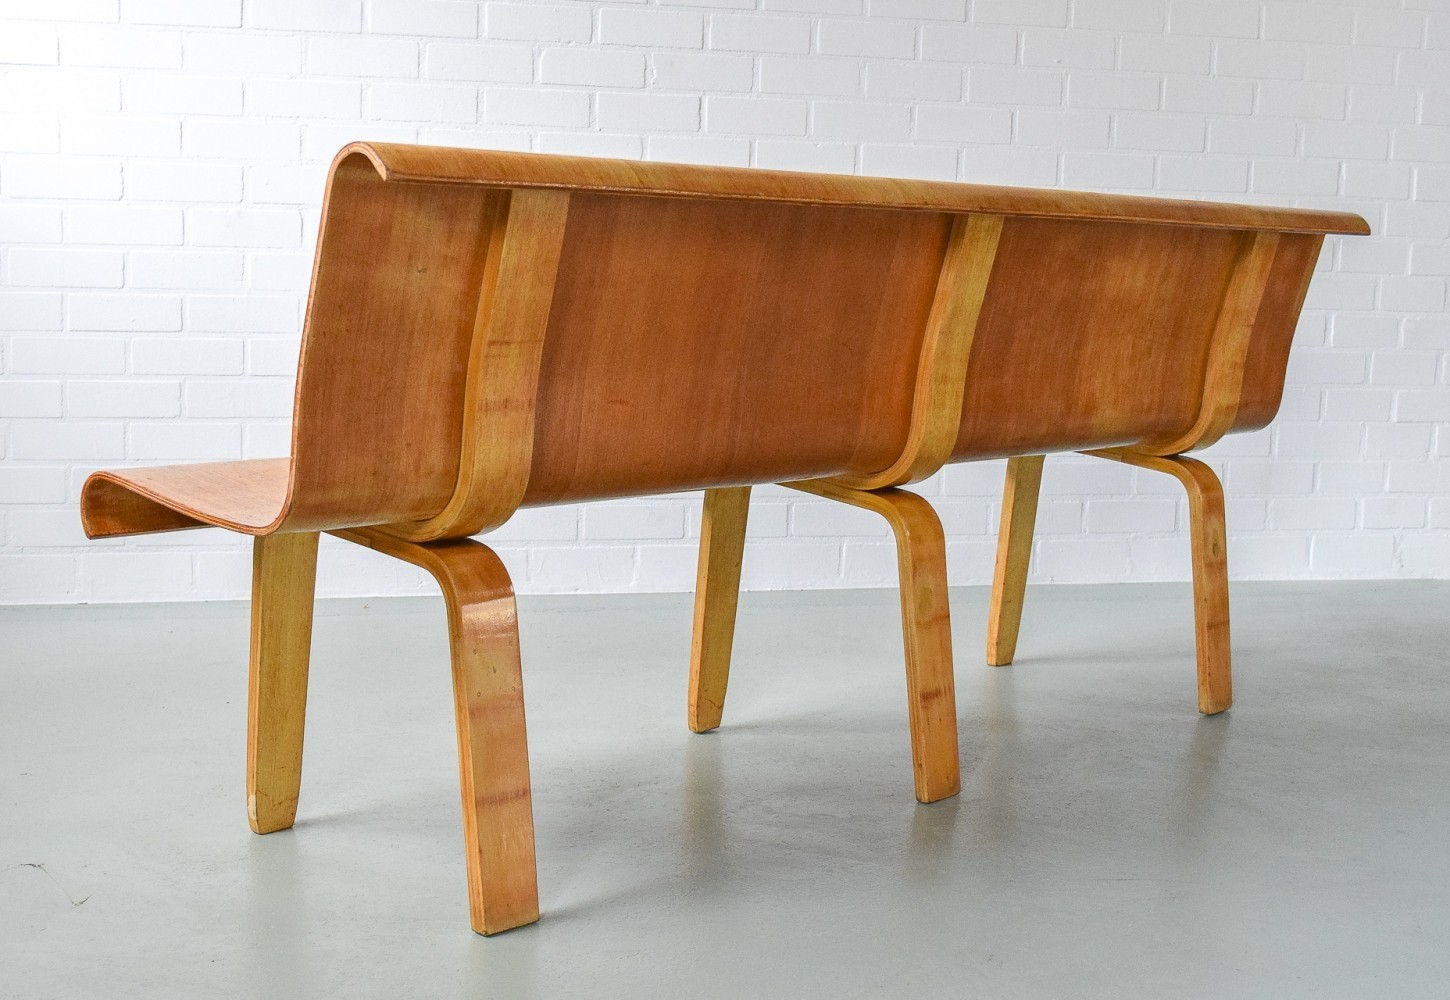 Rare & large plywood bench, 1950s